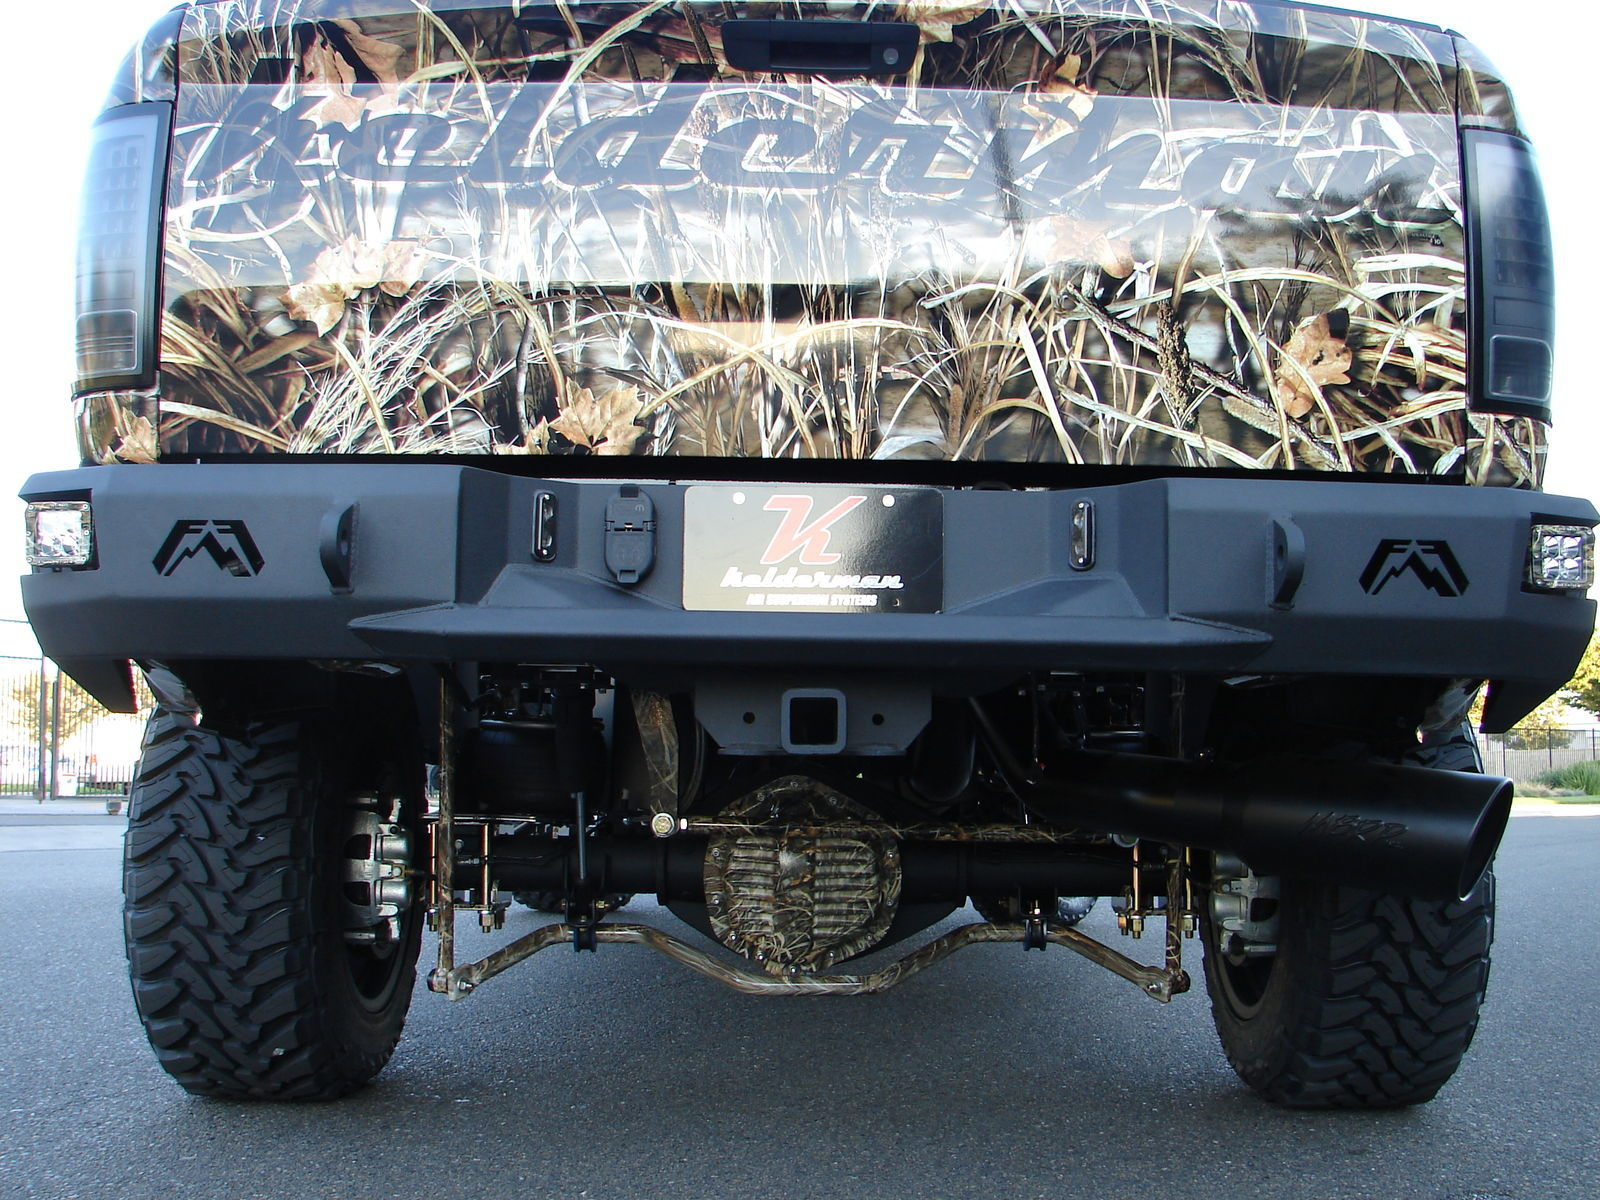 2013 Dodge Ram Pickup 2500 | 2013 Dodge 2500 by TND / Kelderman / RealTree